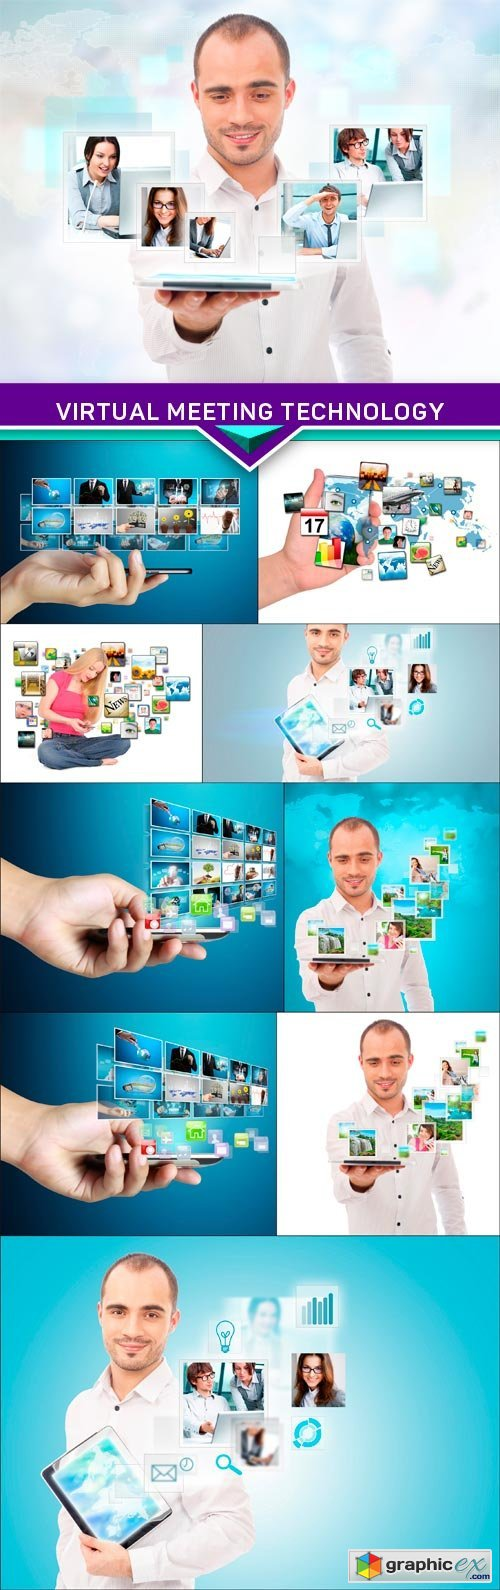 Virtual meeting technology for global business concept 10x JPEG